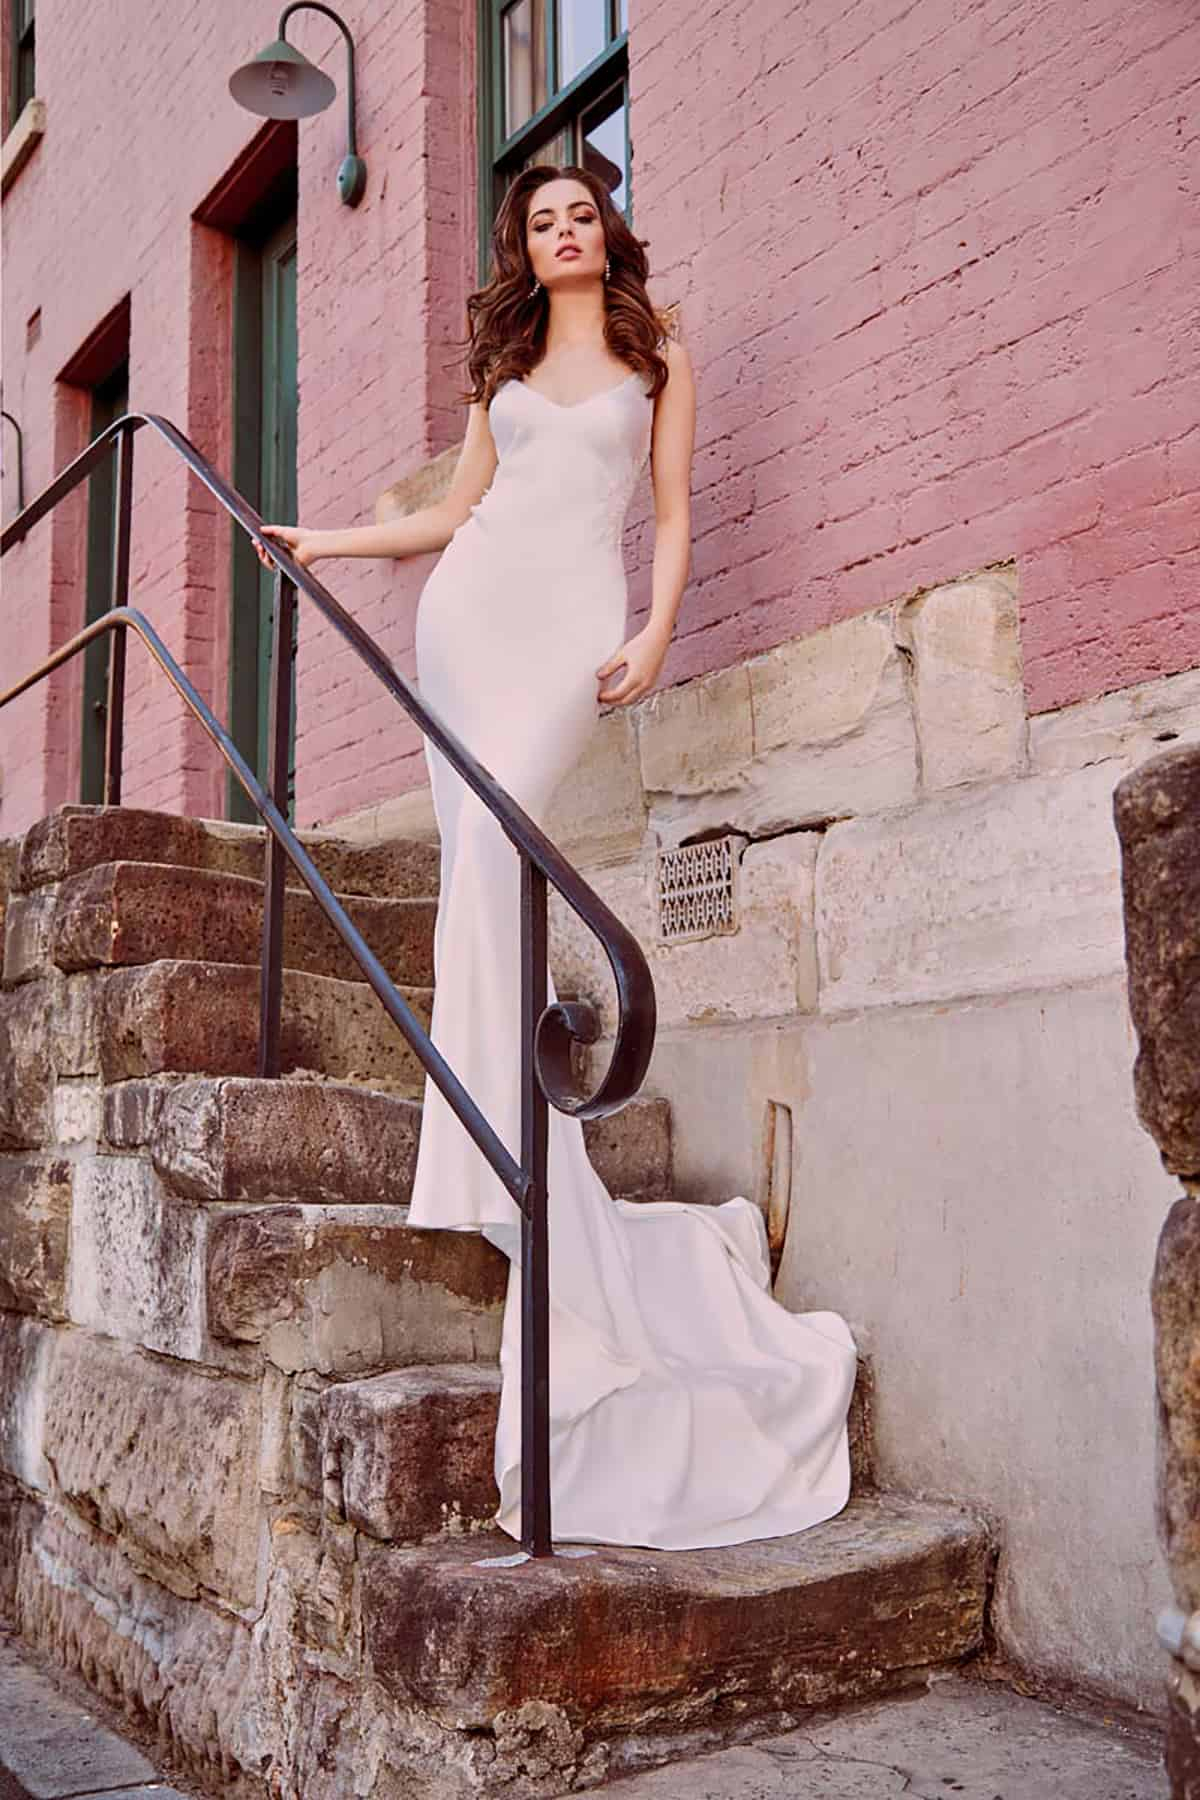 Olivia-bias-gown-wedding-dress-simple-sleek